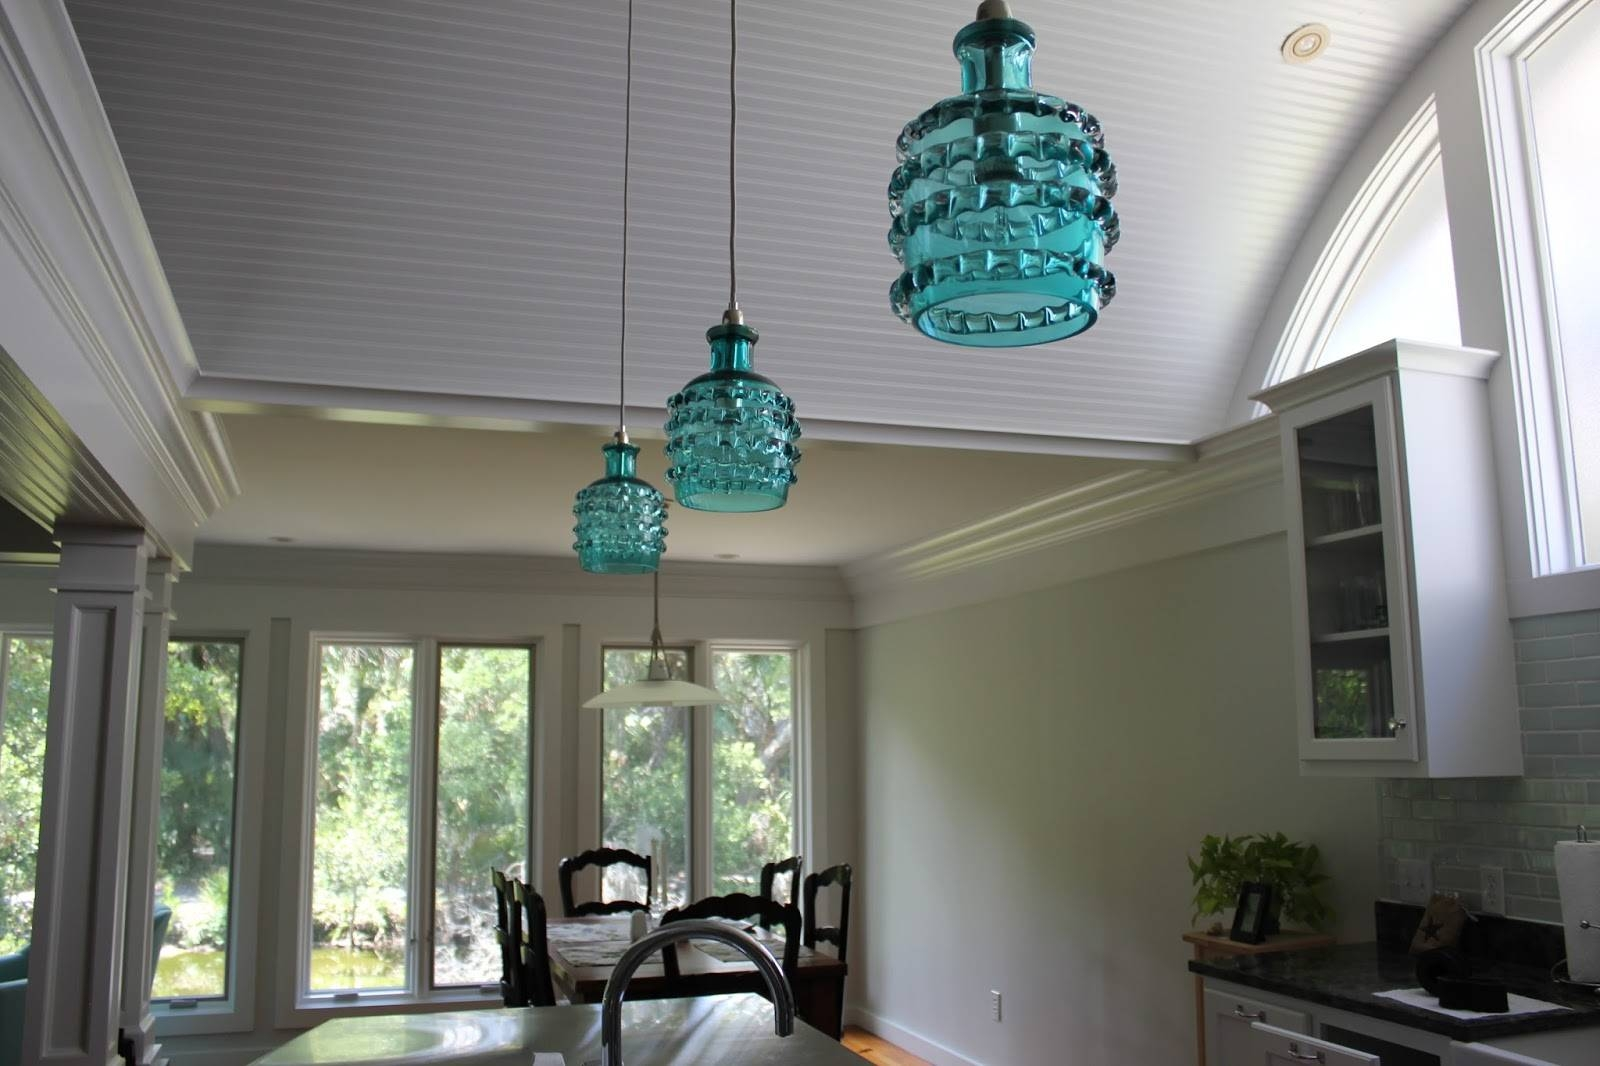 Beach Hanging Lights 15 Inspirations Of Beachy Pendant Lighting